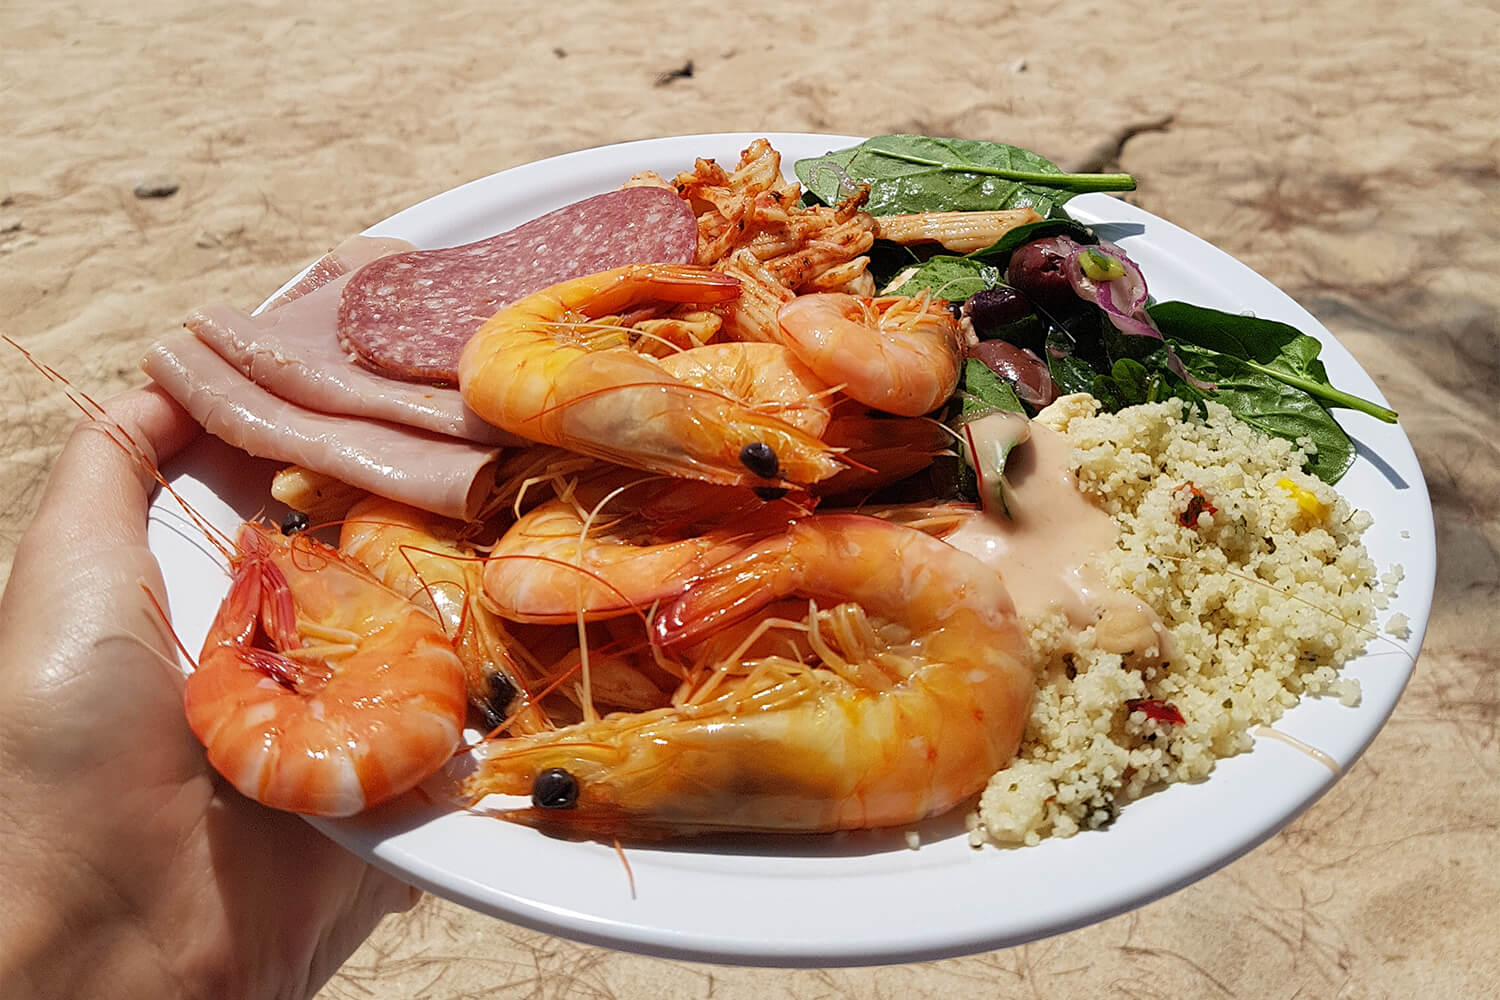 Frankland Islands - Buffet lunch on the beach